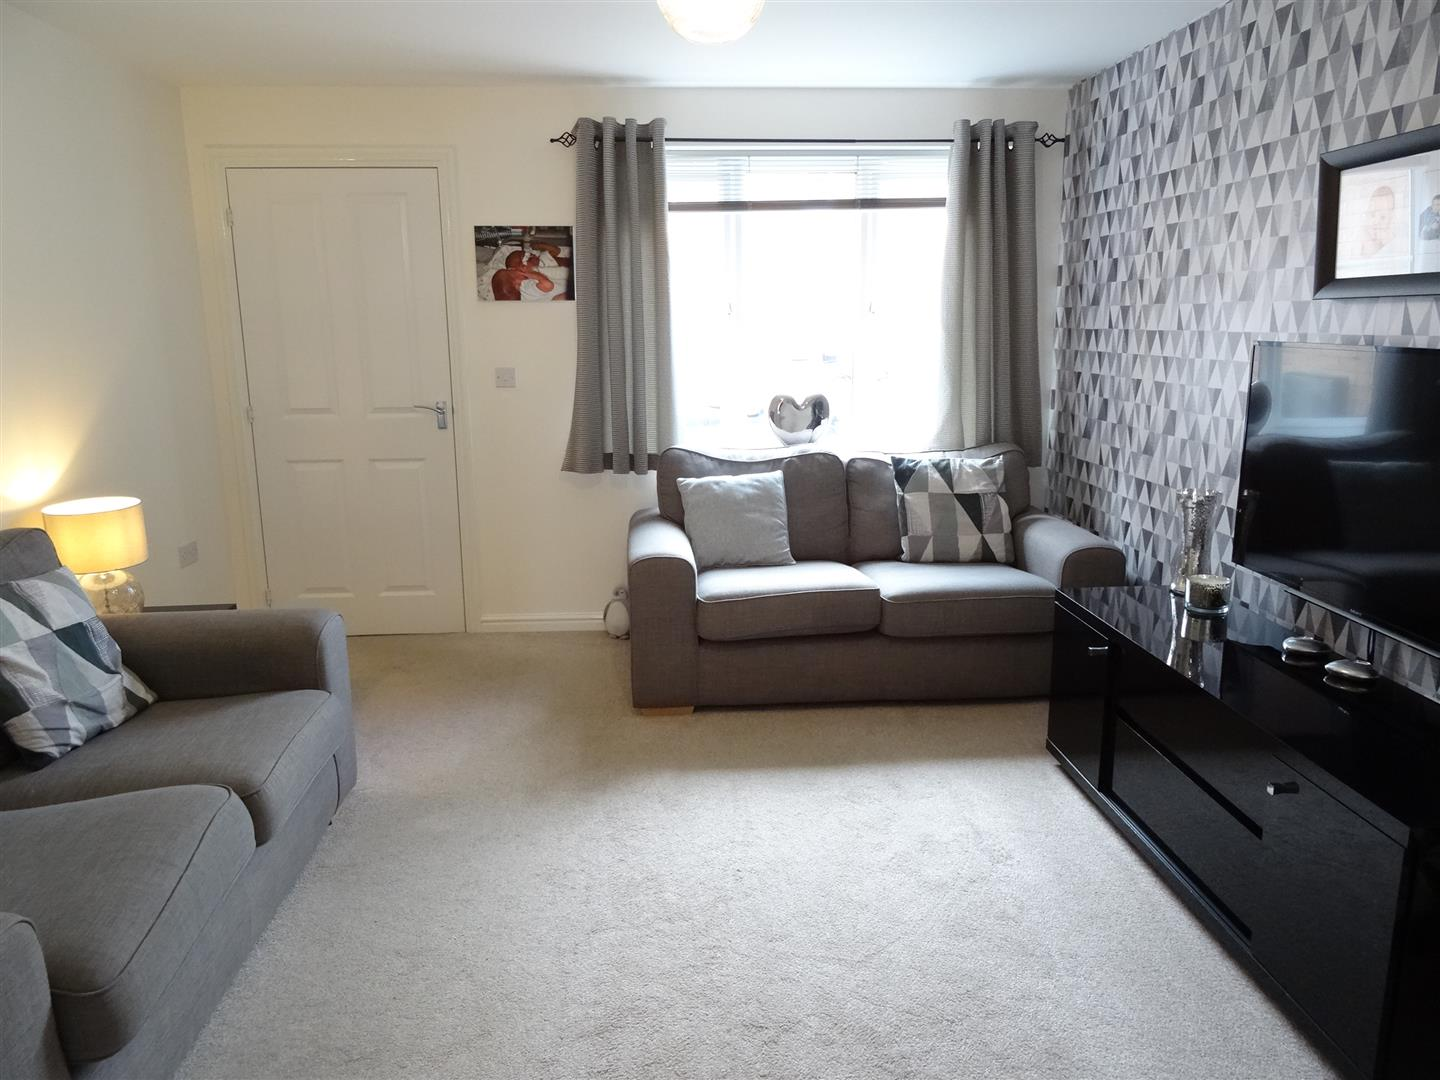 3 Bedrooms House - Semi-Detached For Sale 10 Brackenleigh Close Carlisle